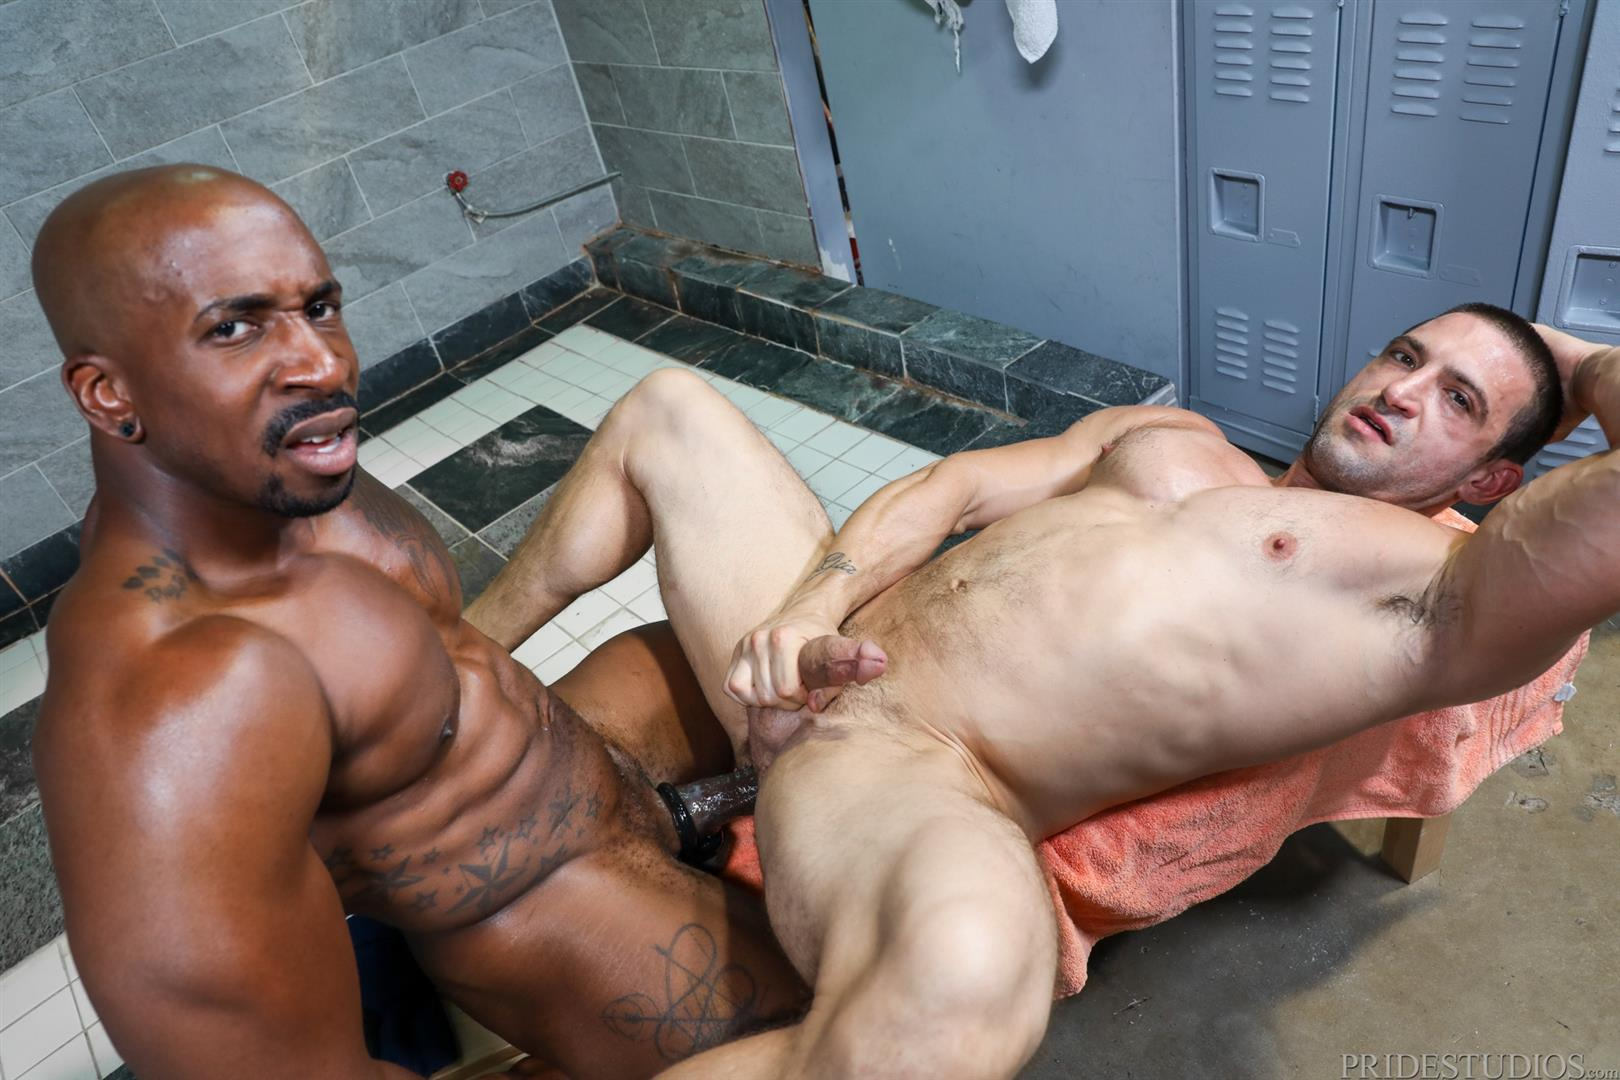 Extra-Big-Dicks-Max-Konnor-and-Ceasar-Ventura-Interracial-Bareback-Fucking-Big-Black-Cock-14 Cruising For Bareback Big Black Dick At The Gym